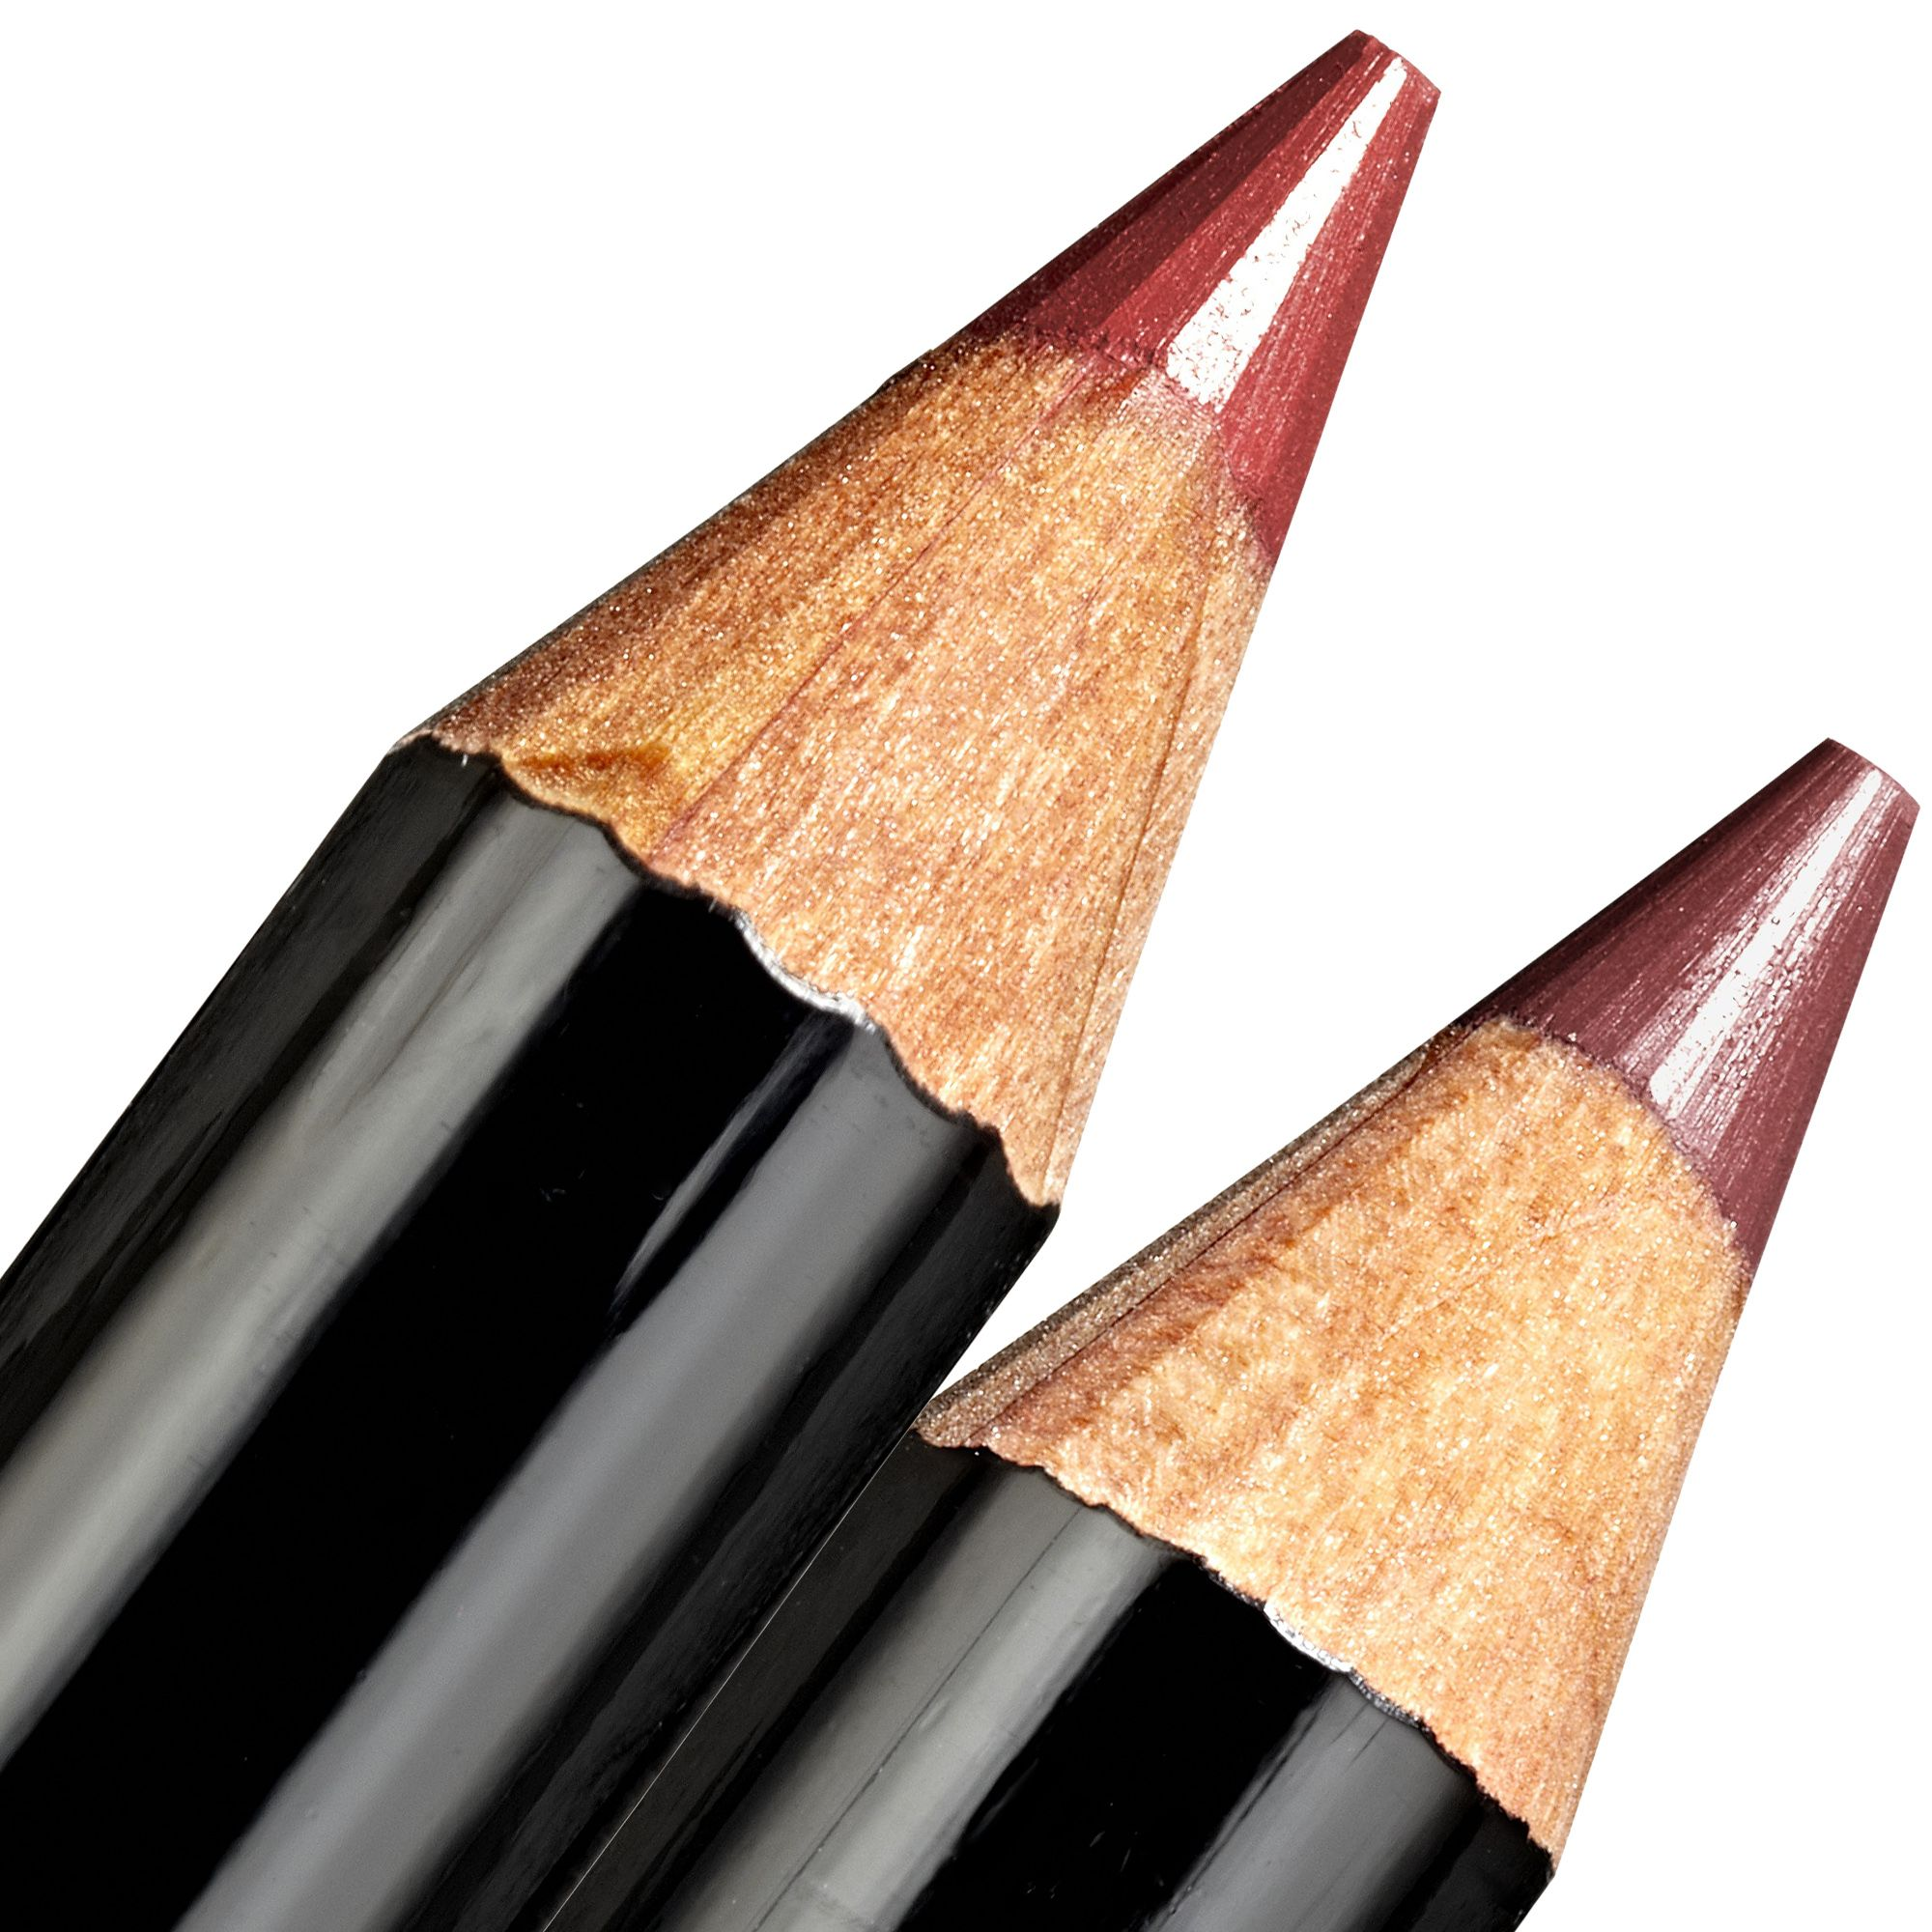 """""""I rarely wear lipstick on my days off&#x3B; I prefer to wear a lip balm and lip liner. I like Bobbi Brown lip liners in Pink Mauve or Rose."""" <strong>Bobbi Brown</strong> lip pencil in Pink Mauve and Rose, $23 each, <a target=""""_blank"""" href=""""https://www.bobbibrowncosmetics.com/product/2343/32757/Makeup/Lips/Lip-Liner/Lip-Pencil/FH14"""">bobbibrowncosmetics.com</a>."""